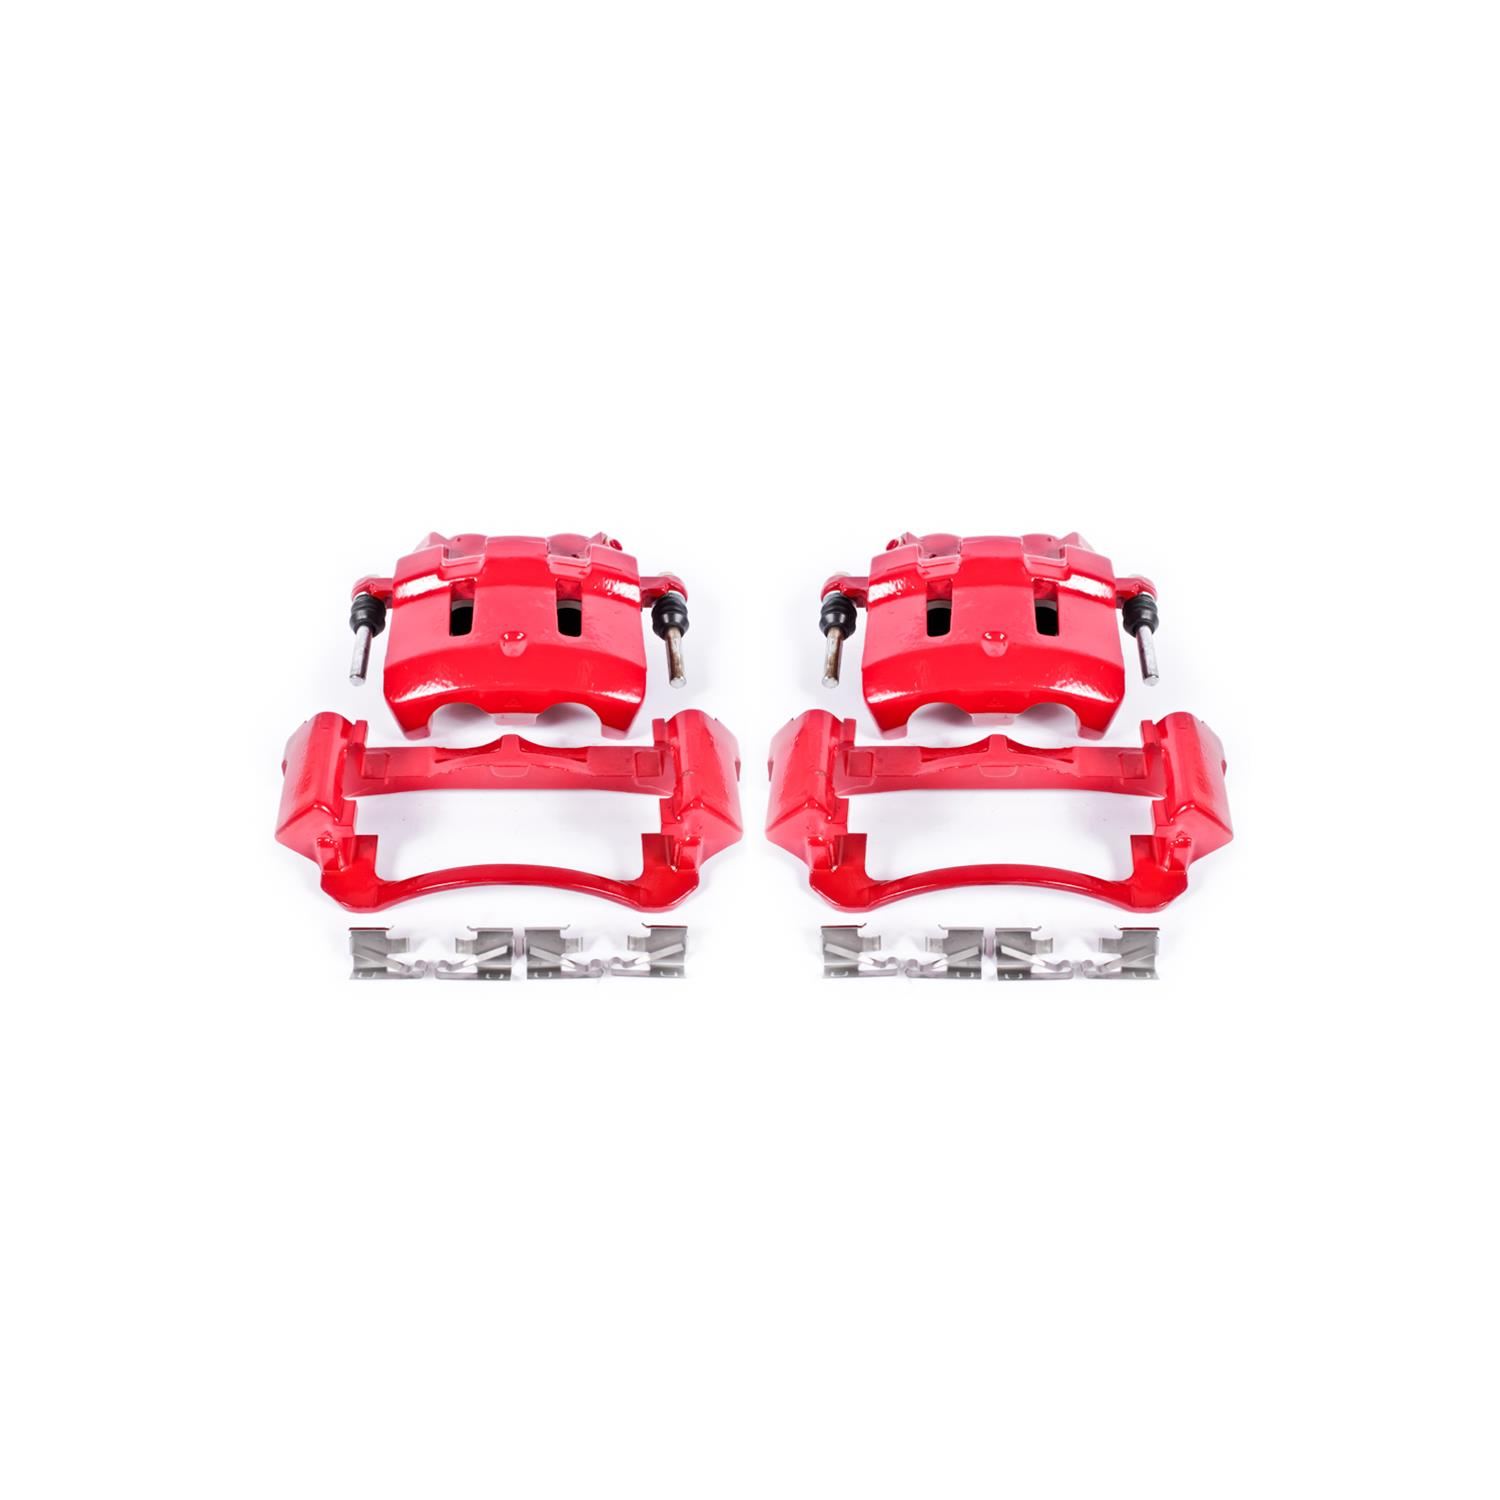 Powerstop S4790-Performance Brake Calipers Powder Coated Red-Front